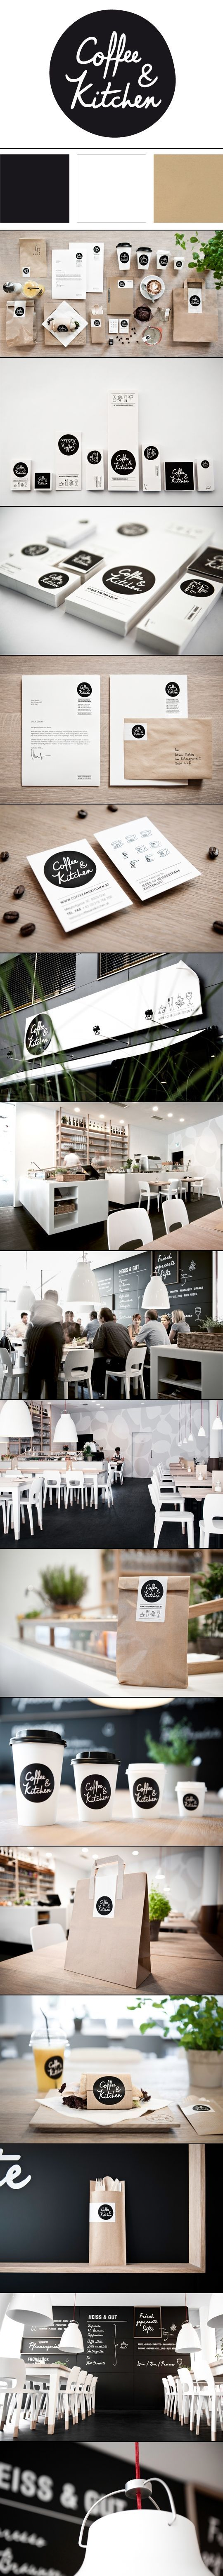 identity / Coffee & Kitchen | Moodley Brand Identity | < repinned by www.BlickeDeeler.de | Take a look at www.LogoGestaltun...